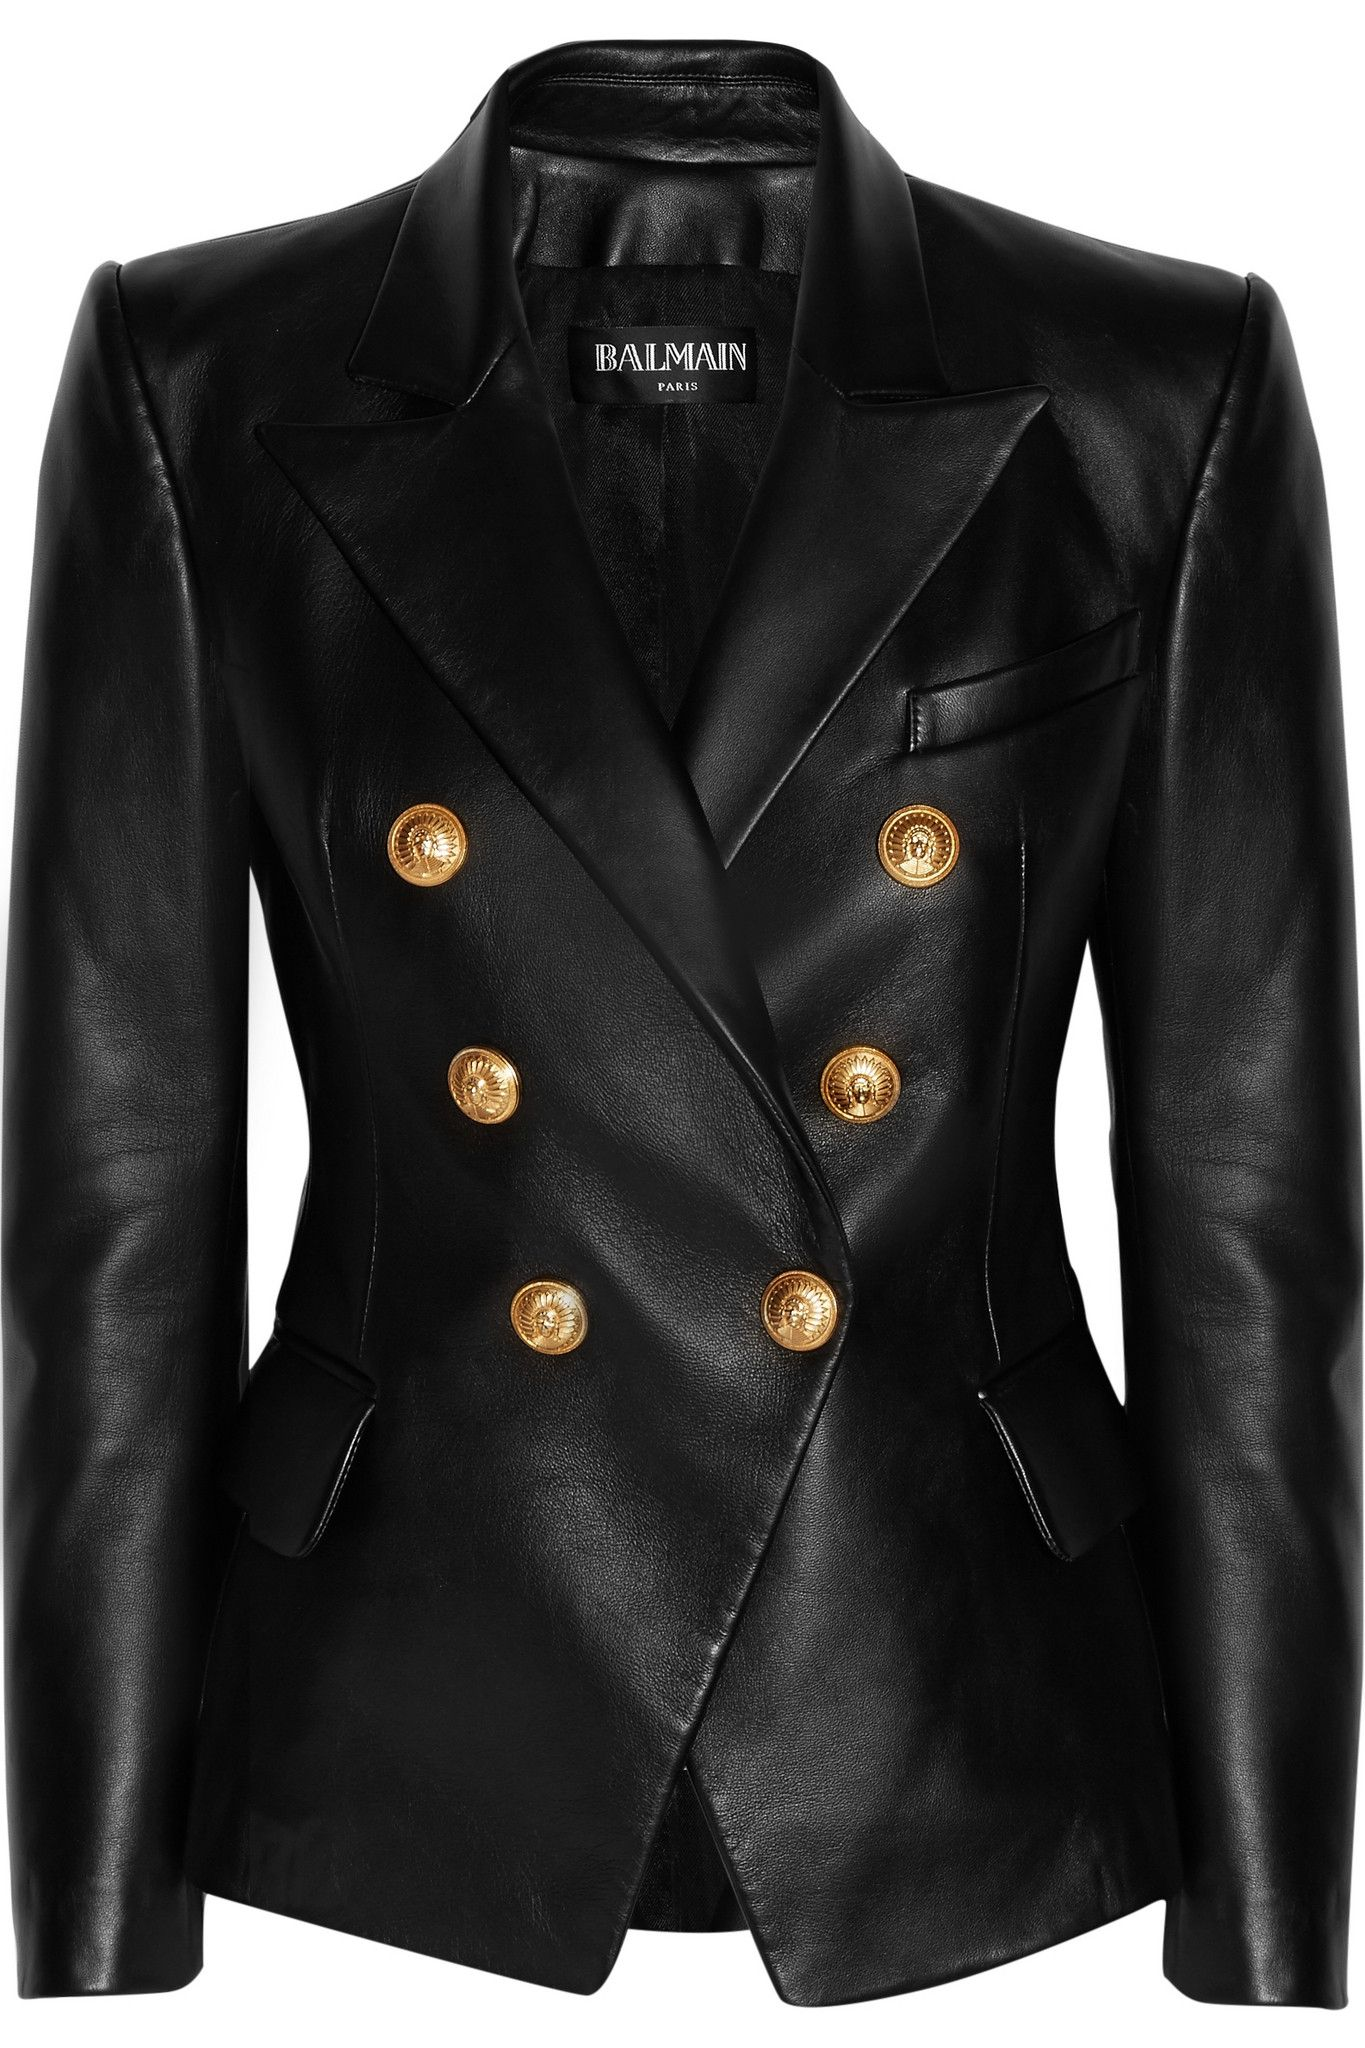 Blazer Fashion By Leather Pinterest On Mcguire Shannon Pin 7qZ0O